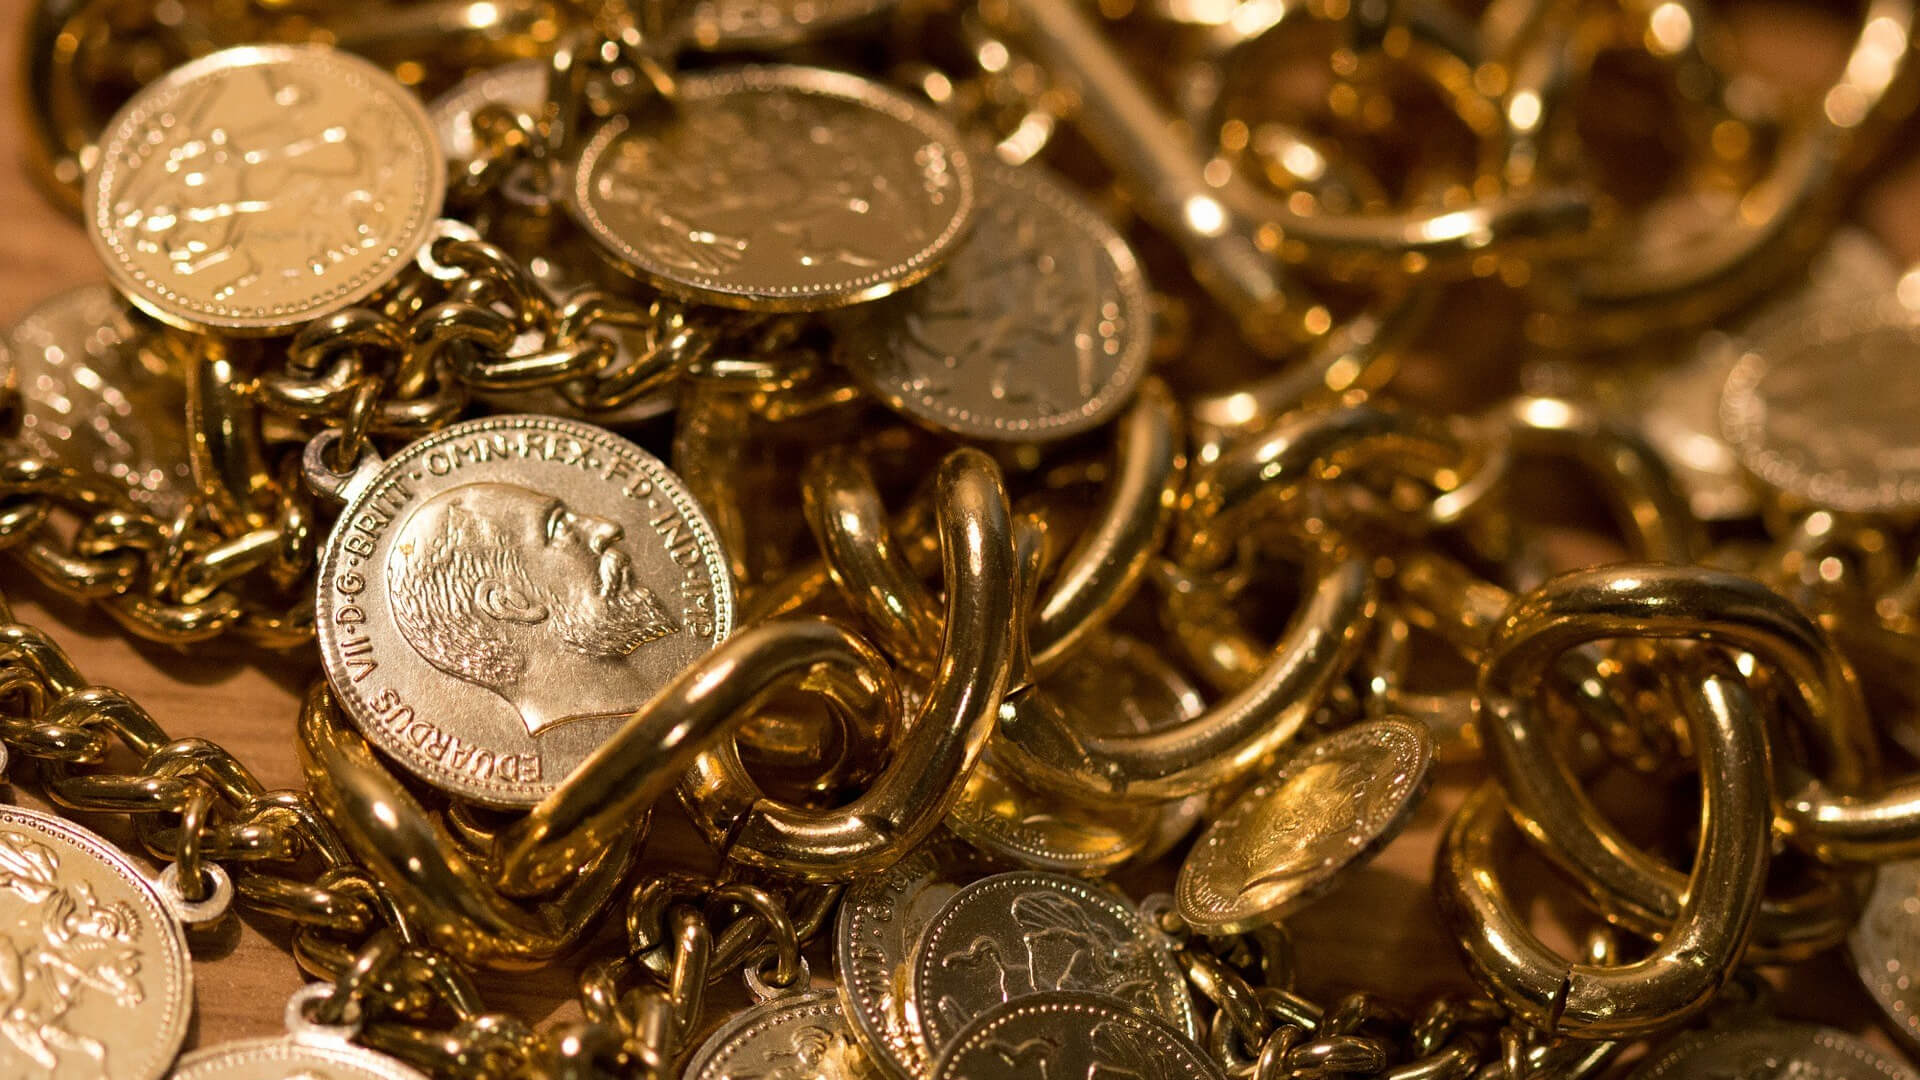 A treasure of 2,800 gold and silver coins was discovered in Hungary